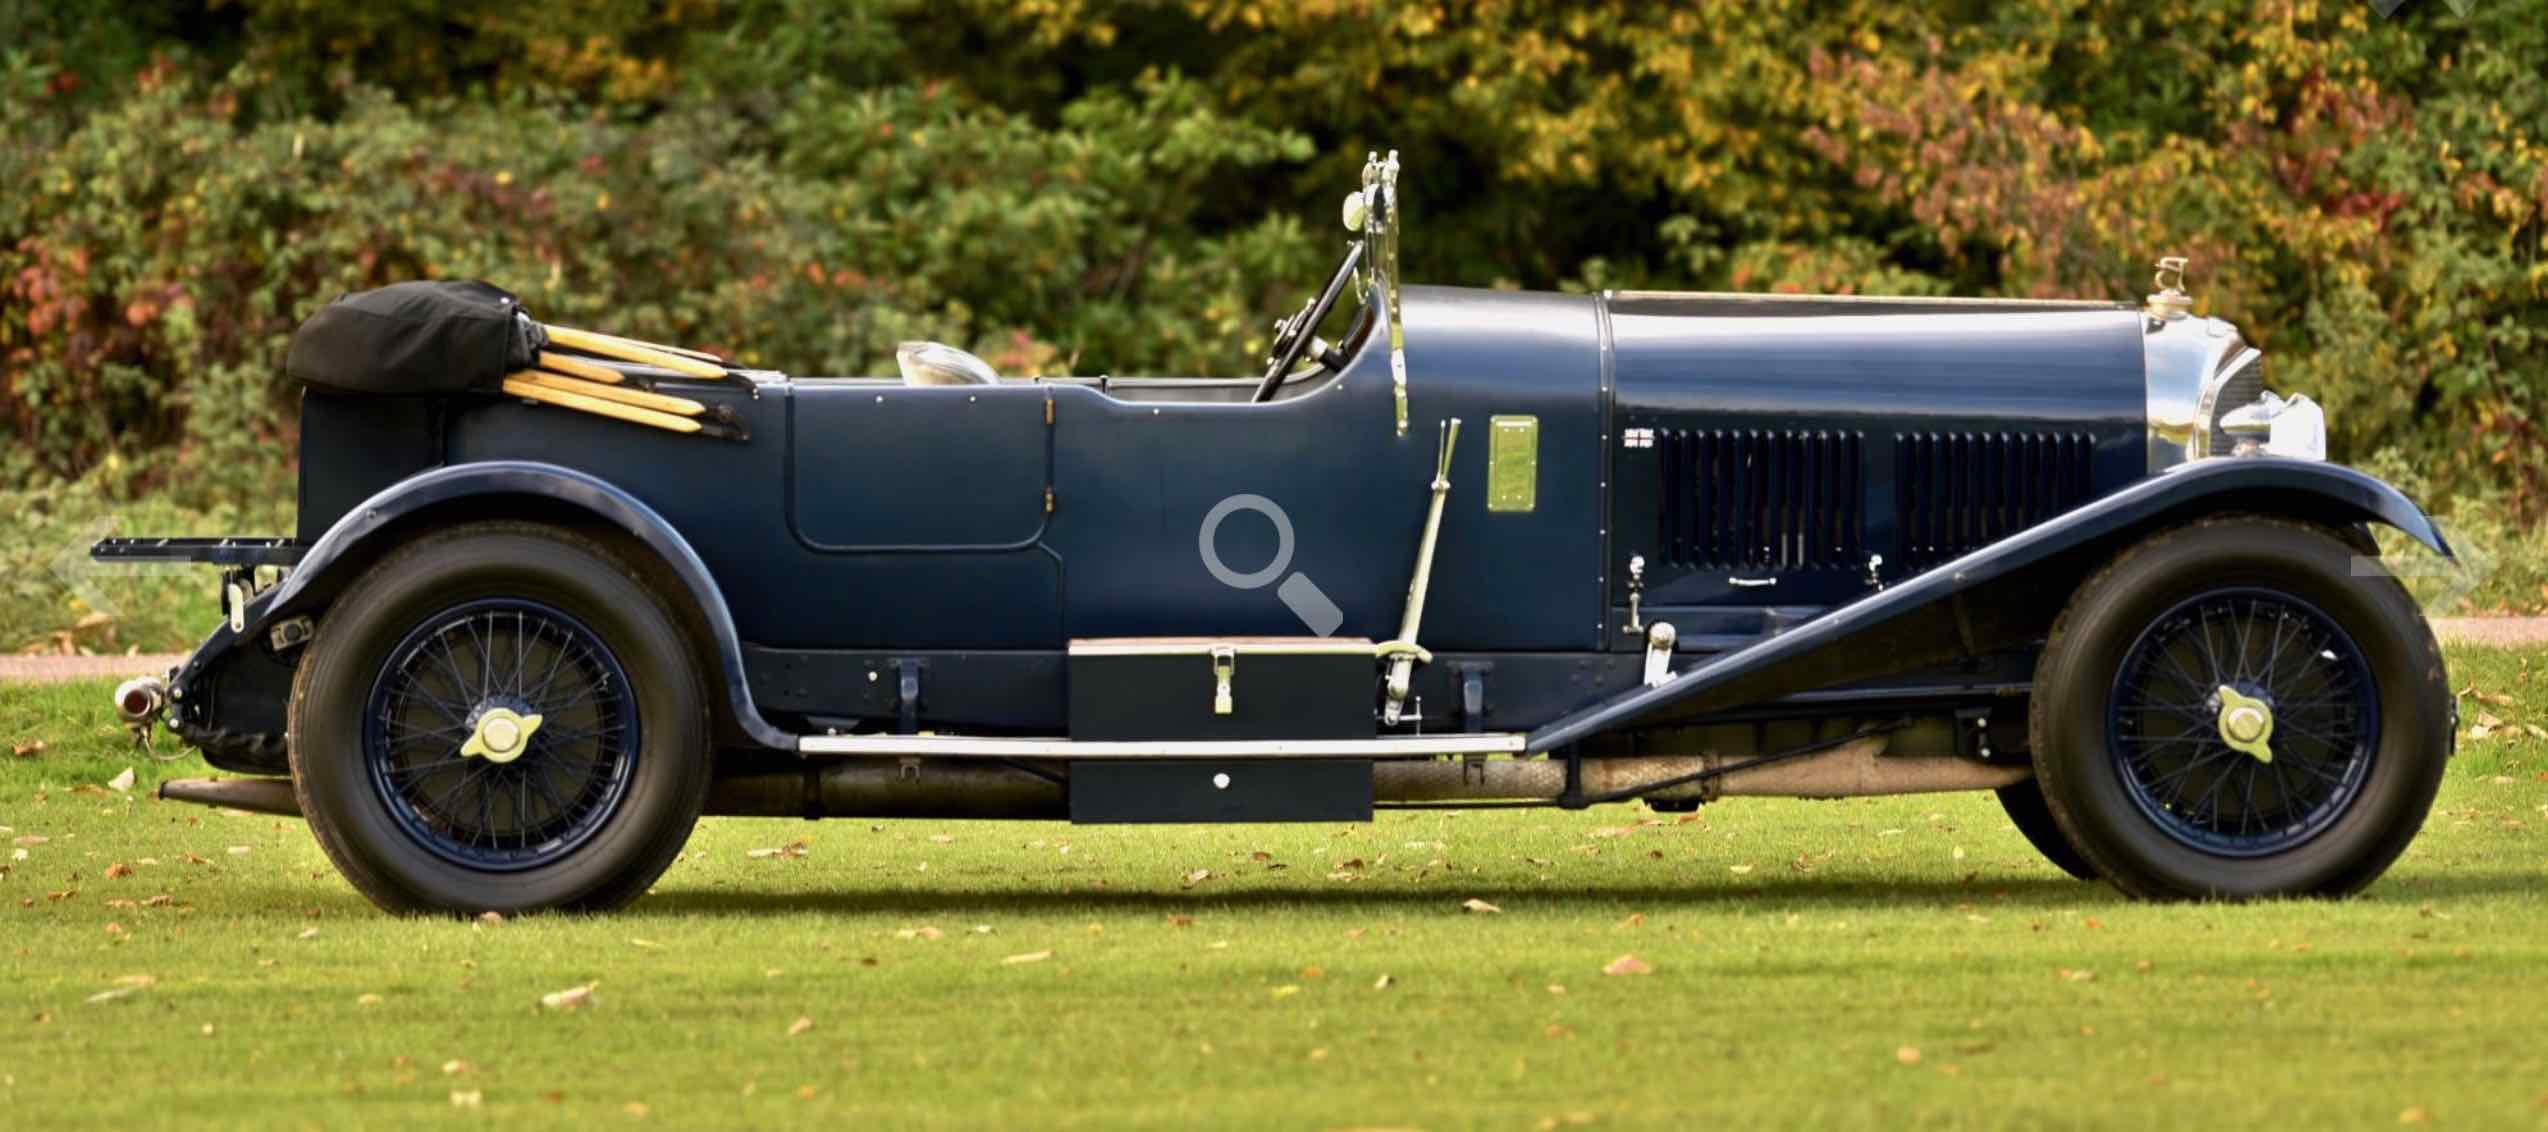 1926 Bentley 6 1/2 Litre Tourer. For Sale (picture 5 of 12)